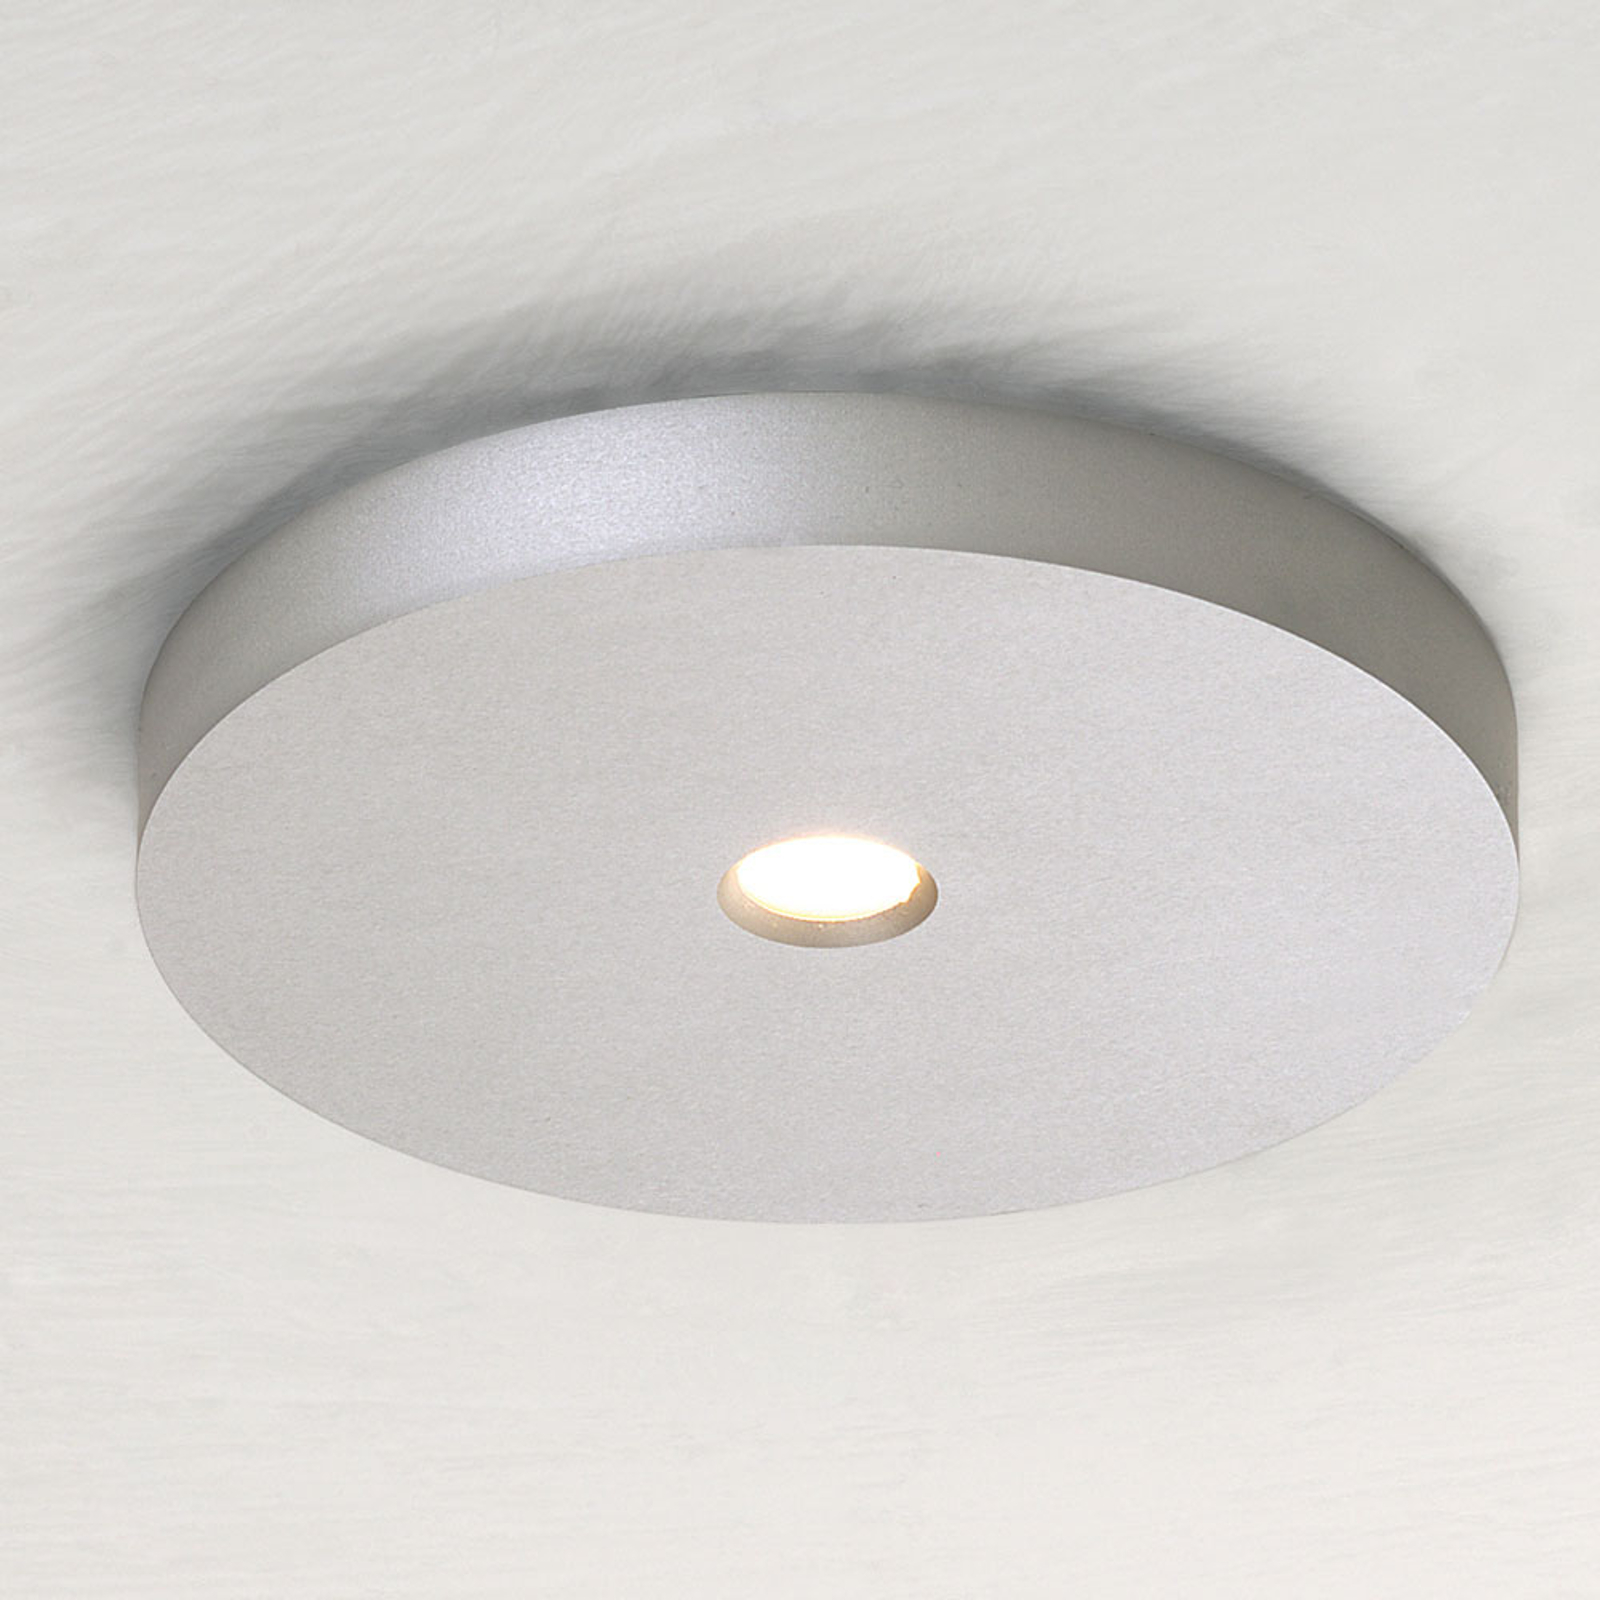 Bopp Close spot pour plafond LED aluminium